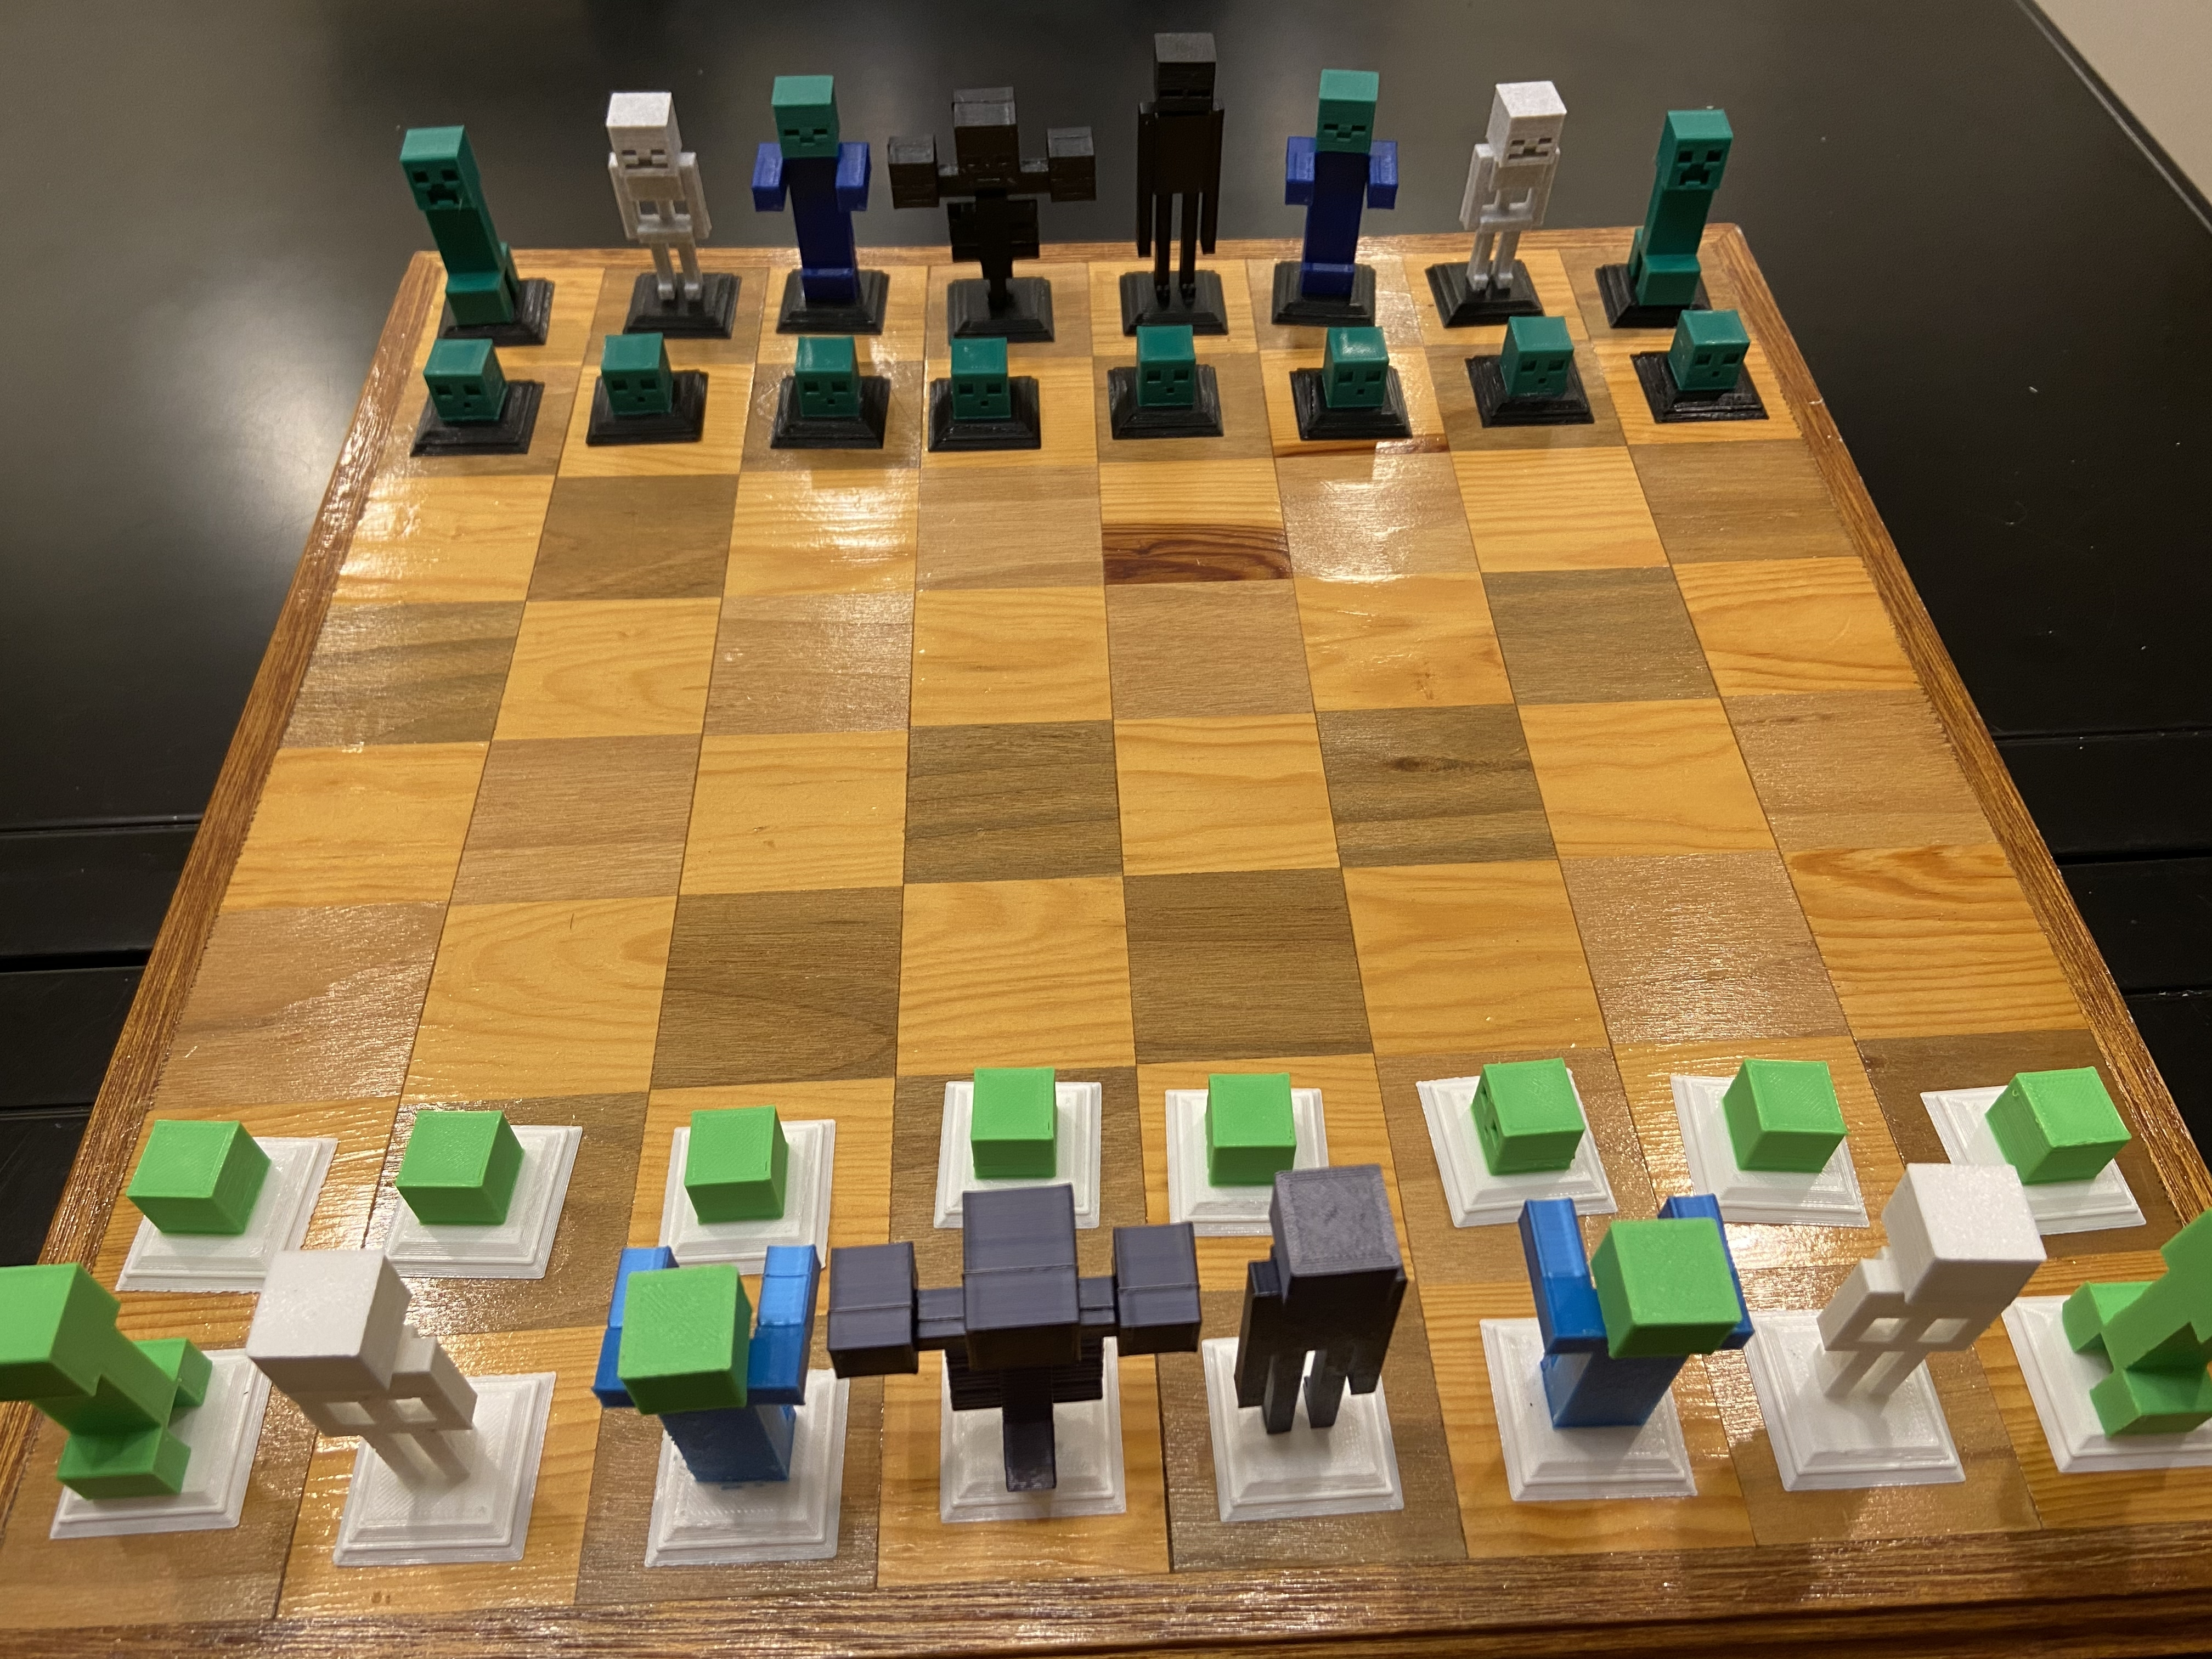 2020-01-20_00.58.02.jpg Download free STL file Complete Minecraft Chess Set • Model to 3D print, Hardcore3D